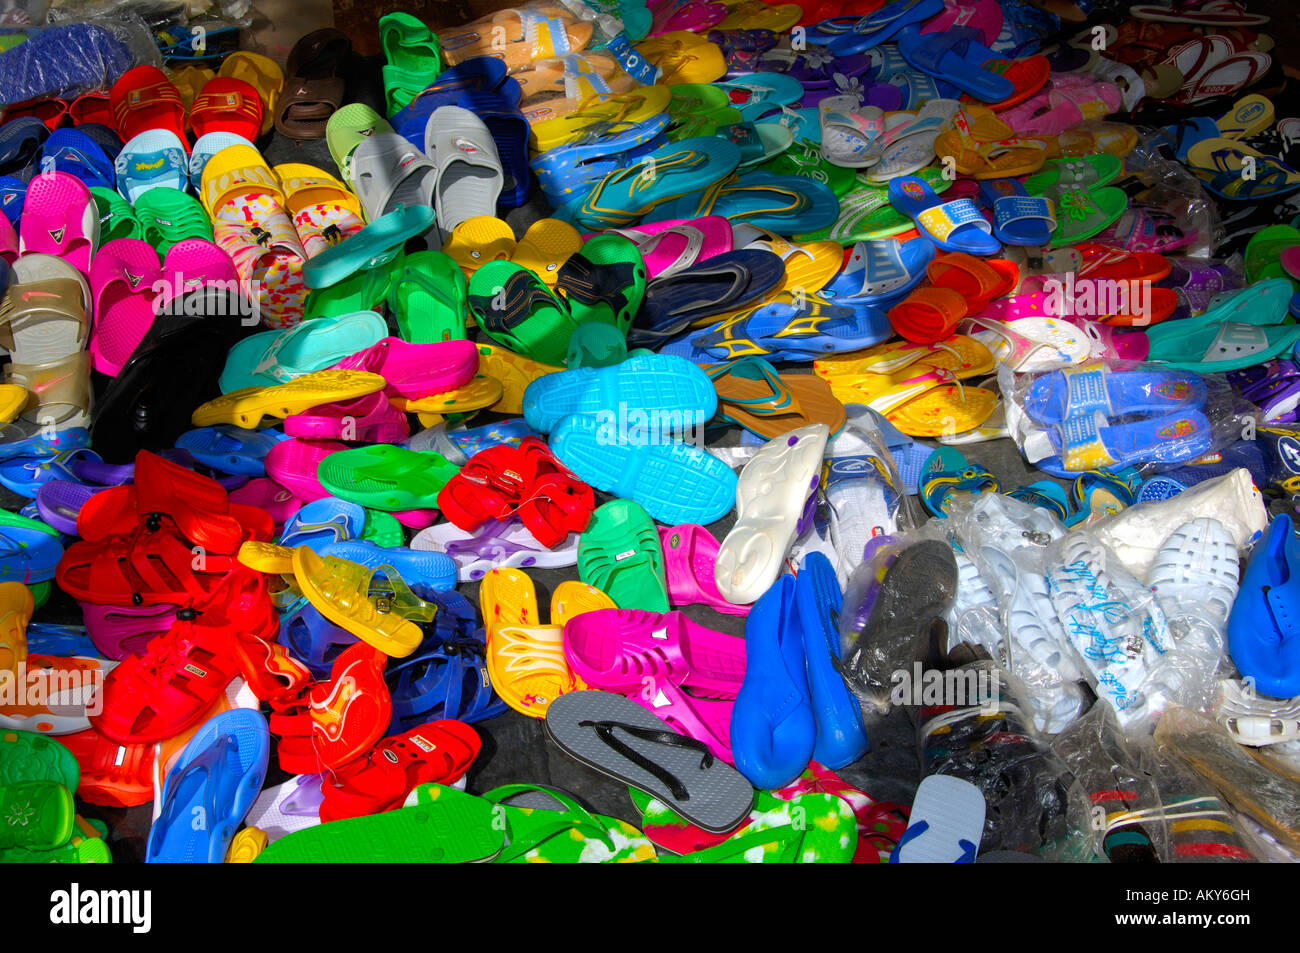 Imported cheap plastic shoes for sale on a local market, Burkina Faso - Stock Image